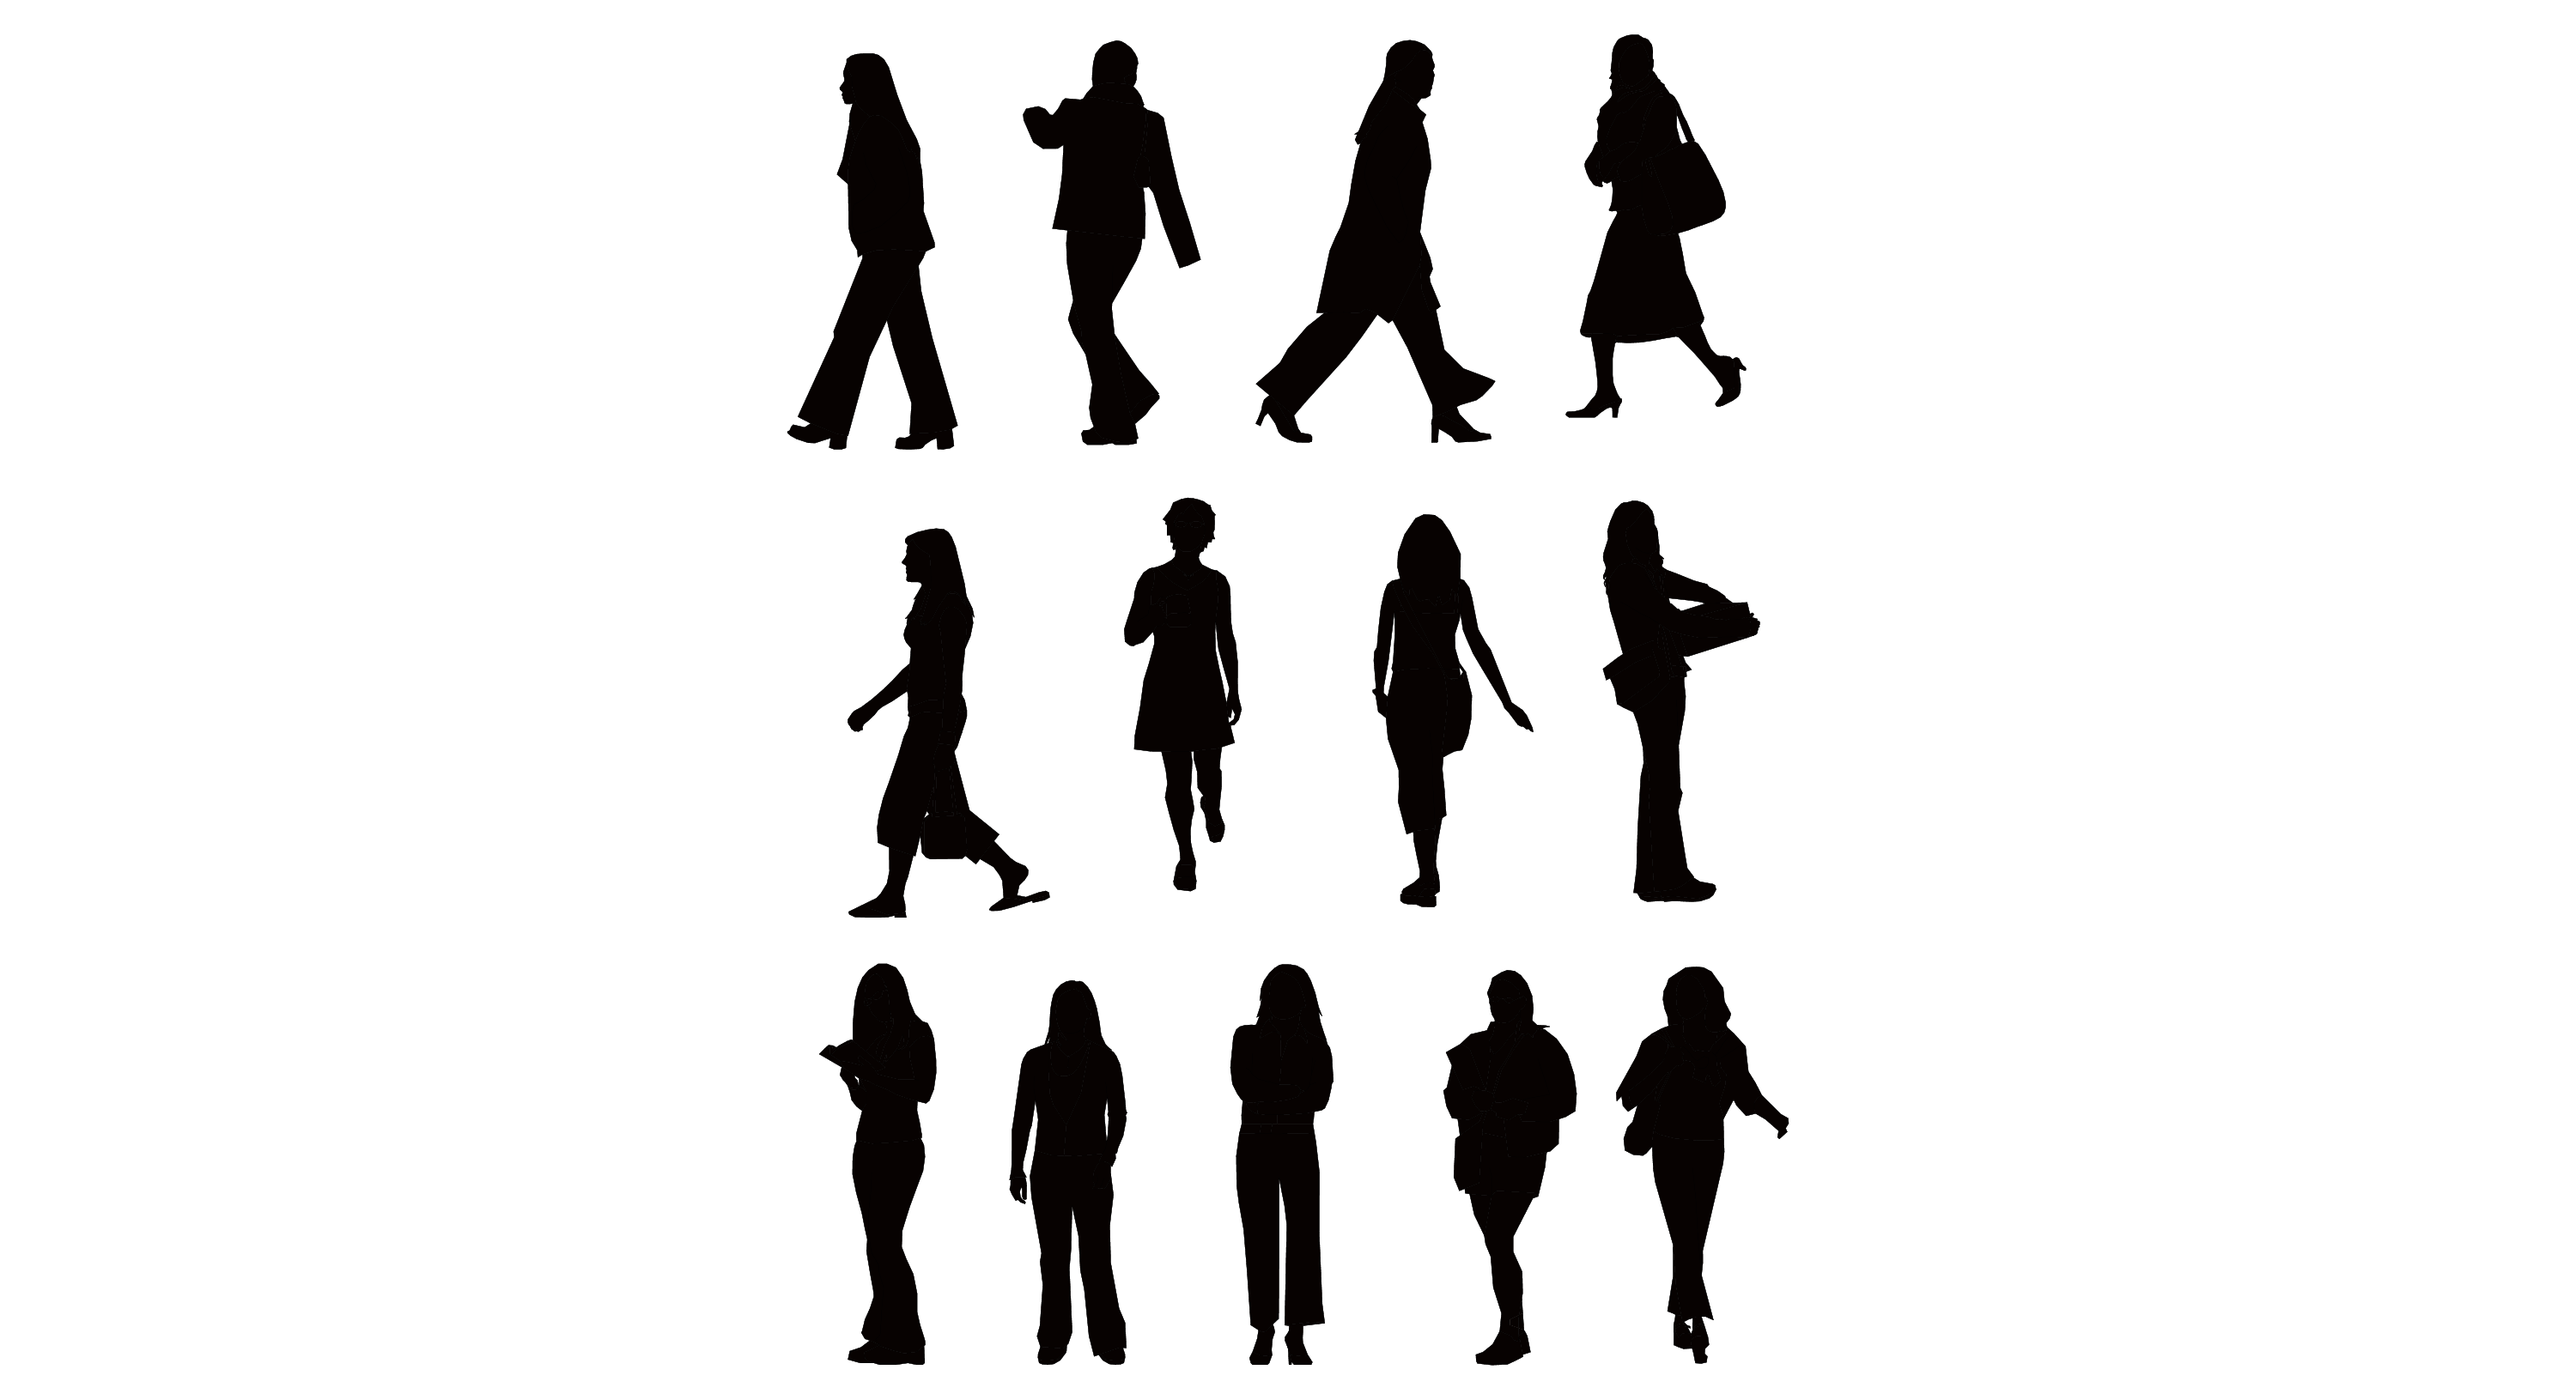 3000x1631 14 Plan View Person Silhouette Vector Images